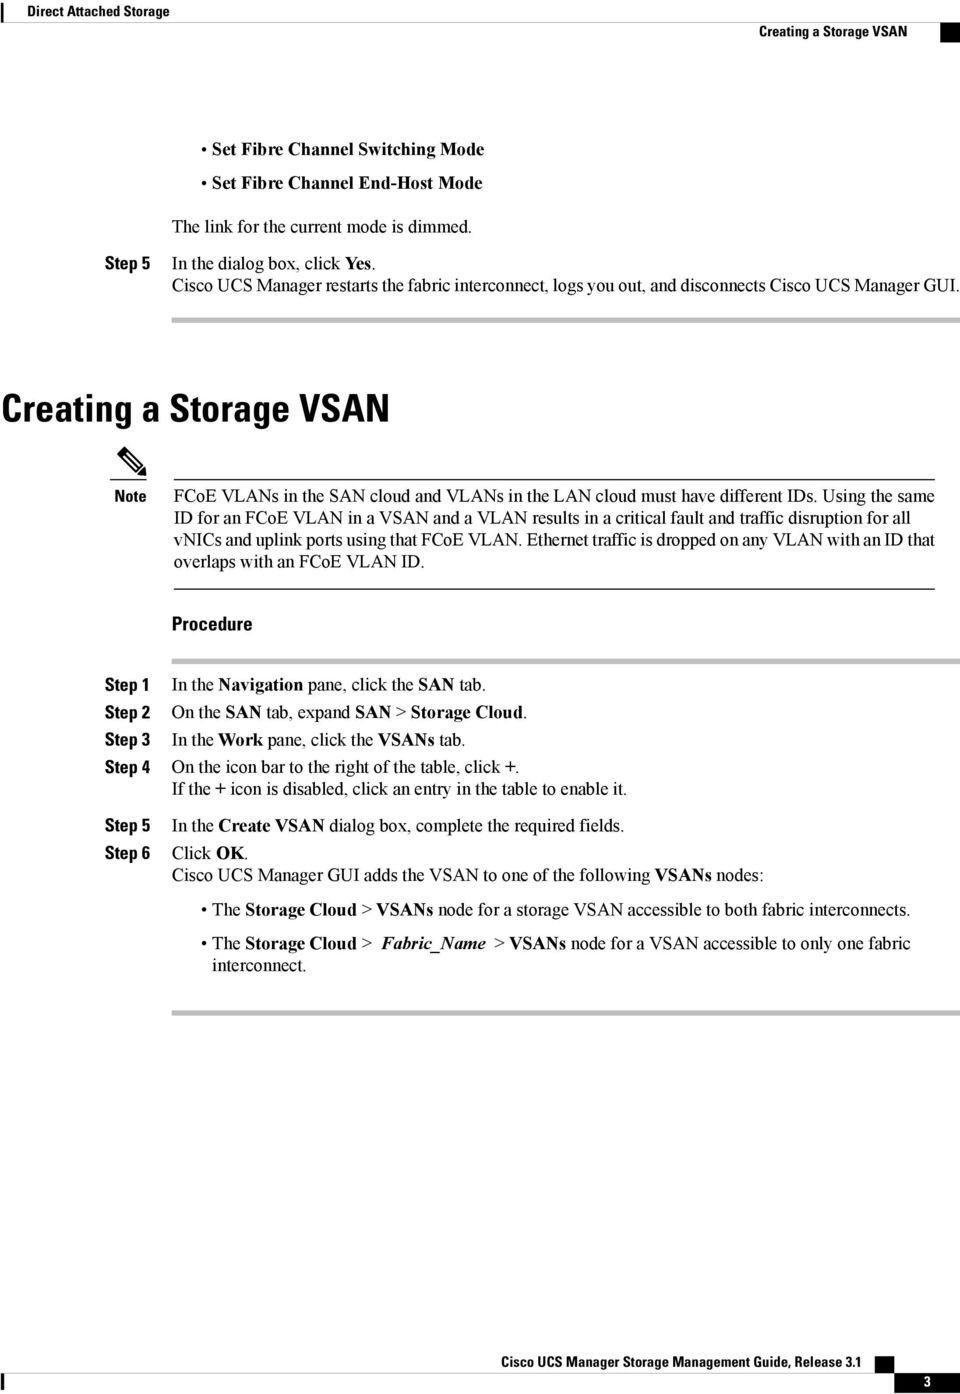 Direct Attached Storage - PDF